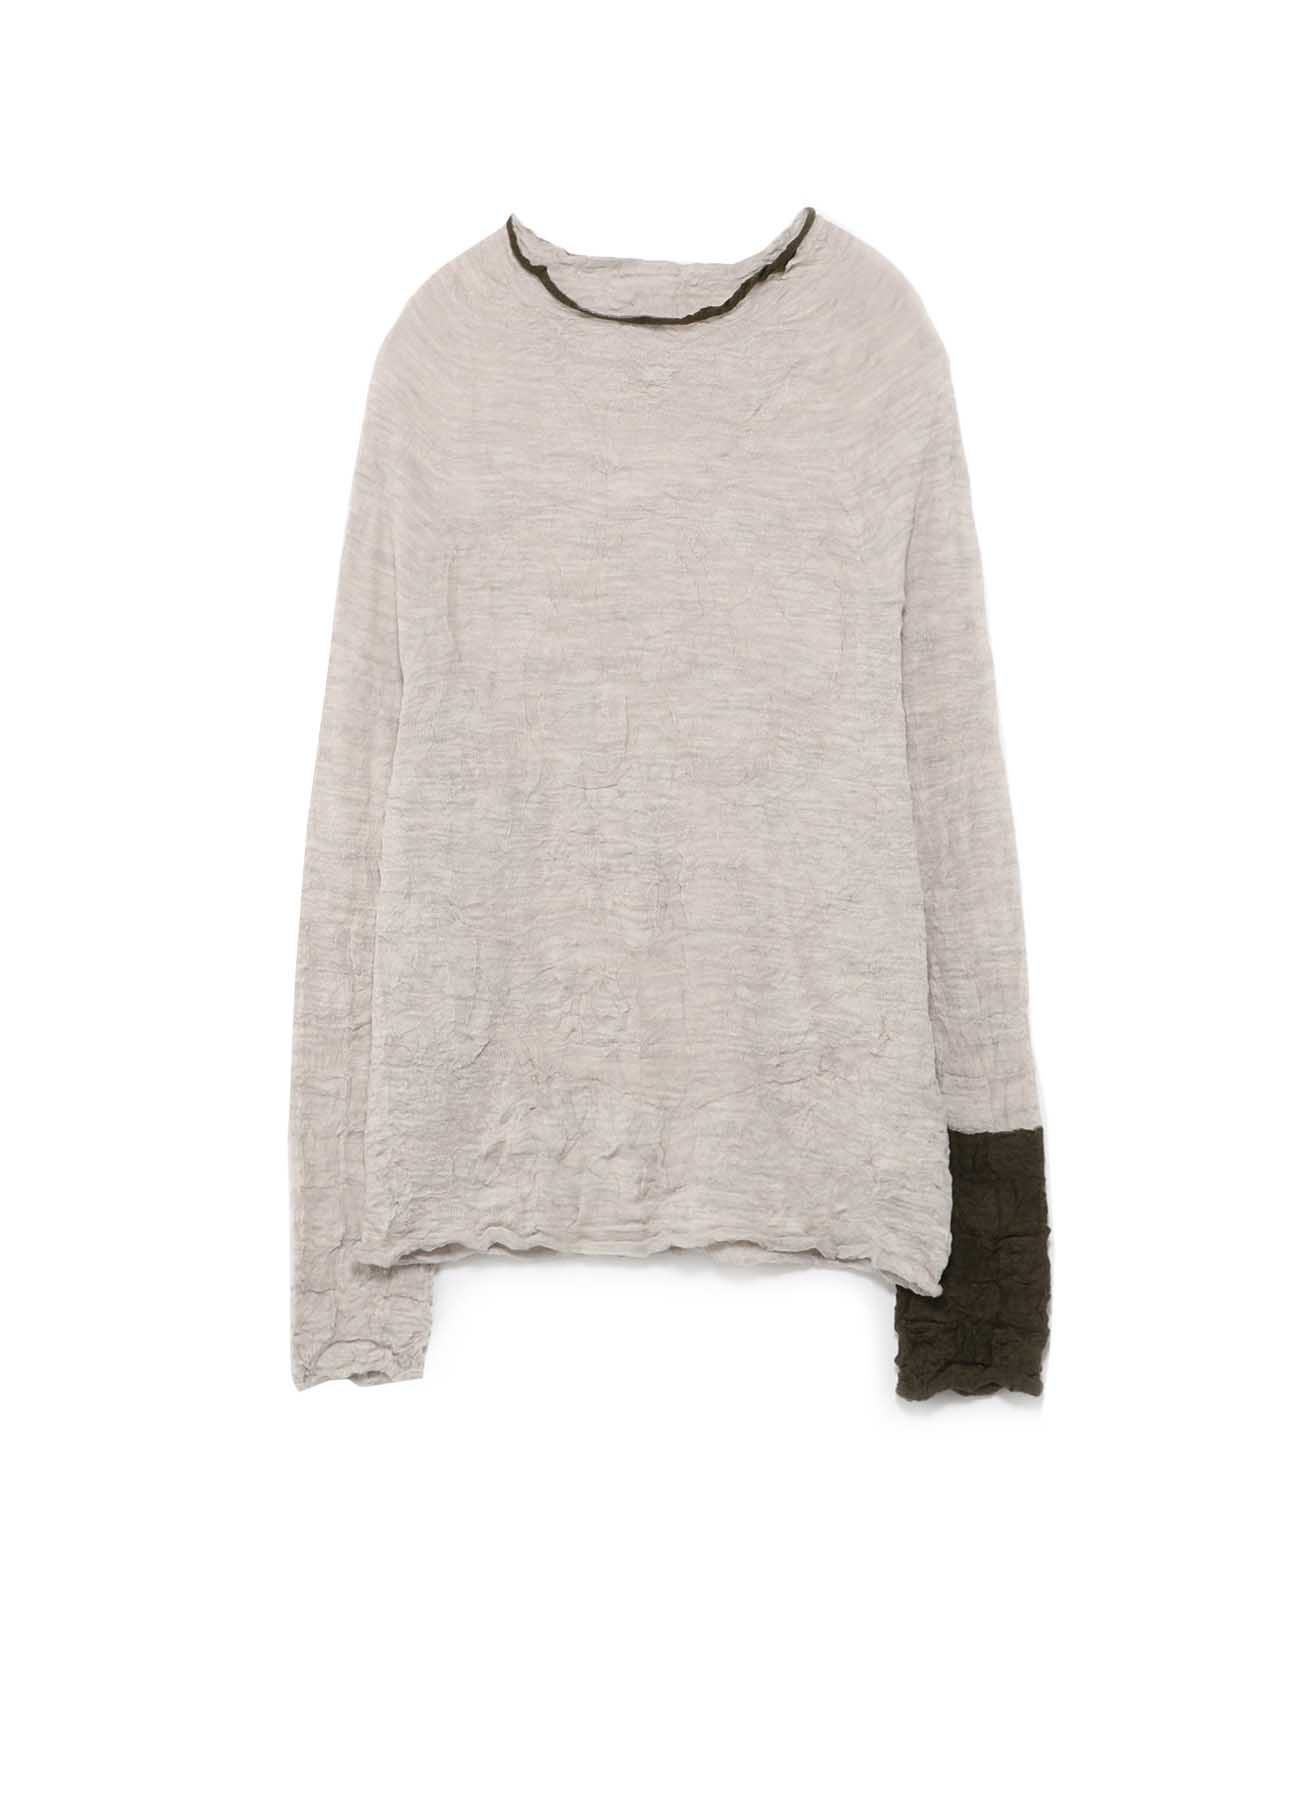 LINKS WRINKLE OFF NECK LONG SLEEVE PULLOVER